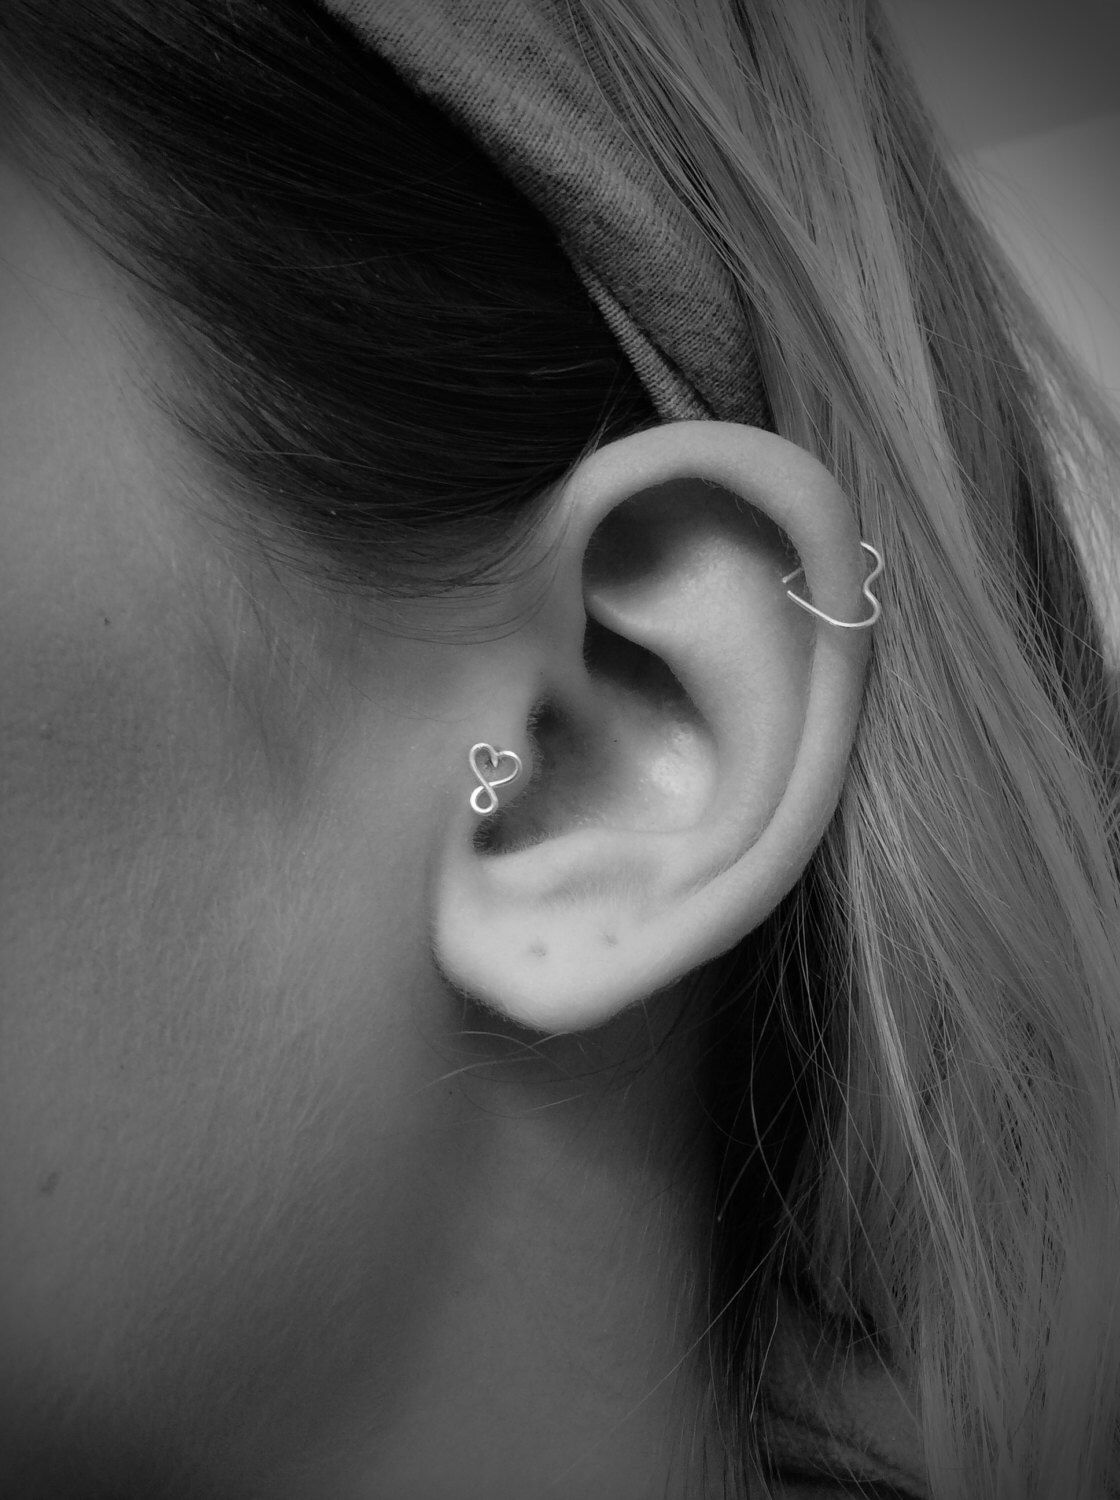 Infinity Heart Tragus Earring, Nose Stud, Cartilage Stud, Tragus Piercing, Cartilage  Piercing